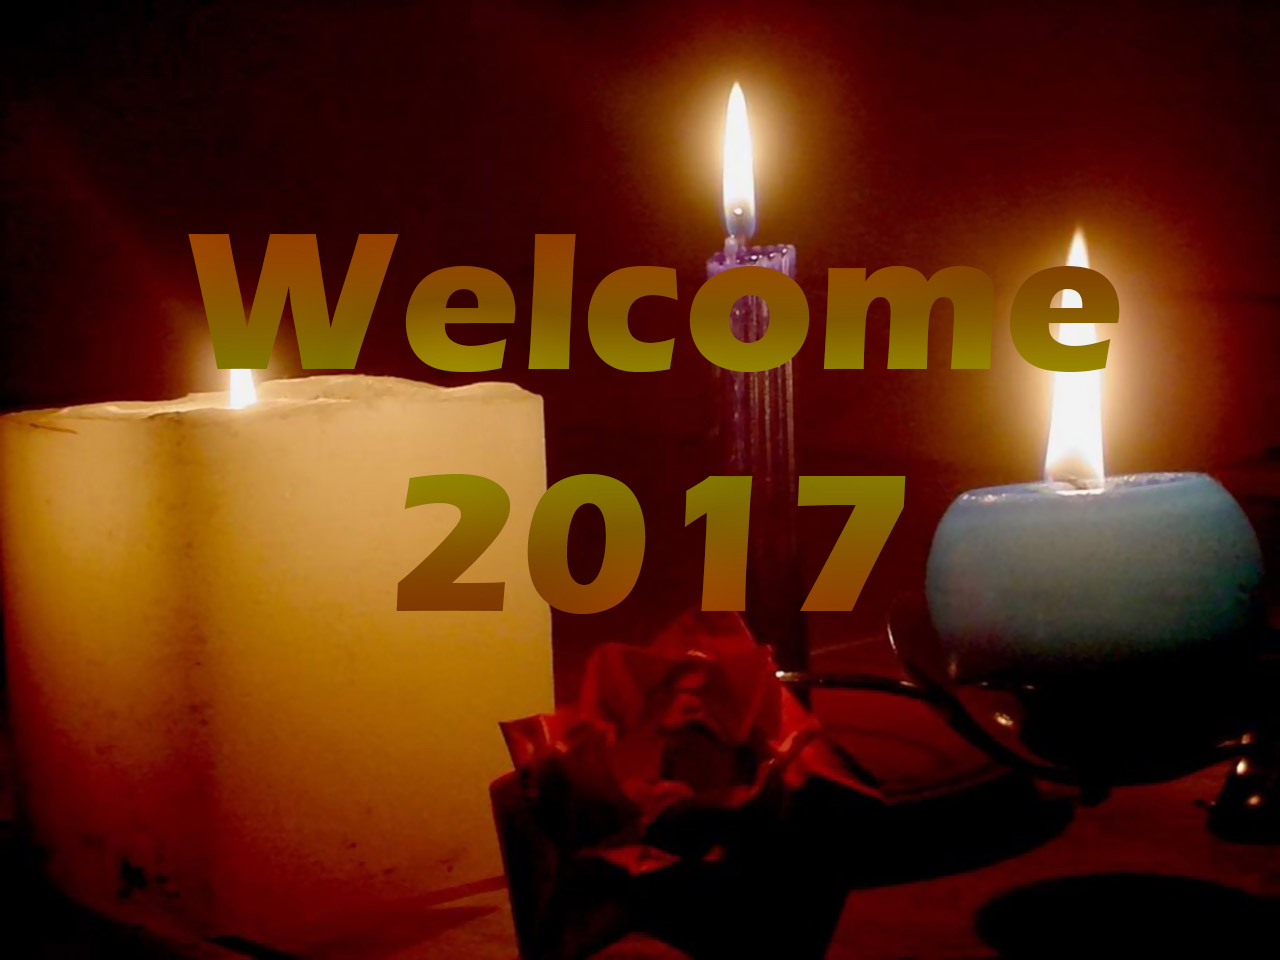 Wallpaper download 2017 - Welcome 2017 Happy New Year Wallpaper Download Pictures Images In Hd Photos